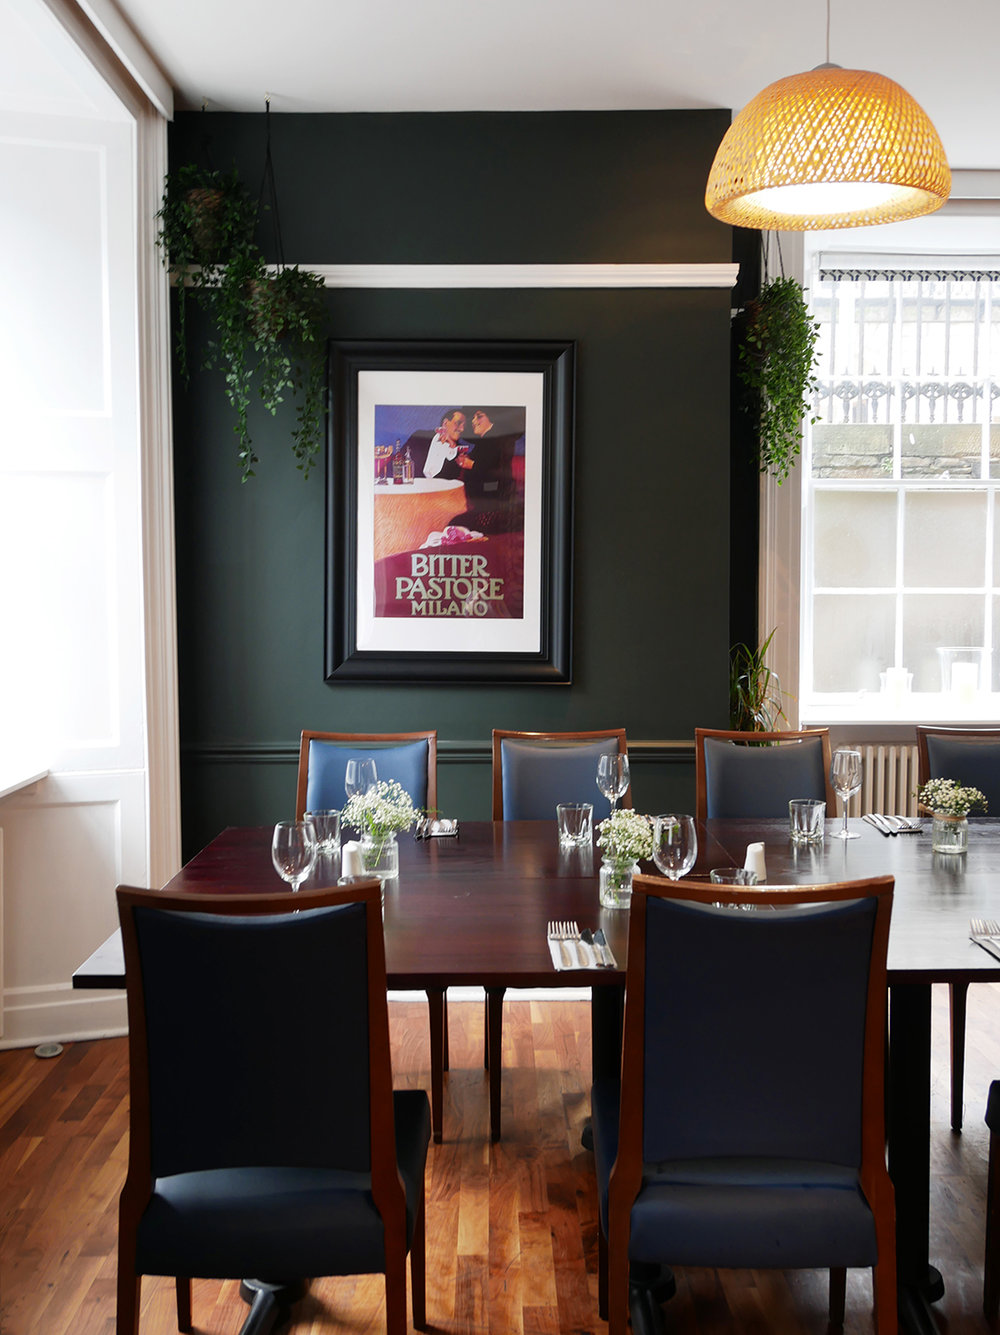 private dining room otro restaurant edinburgh 1.jpg